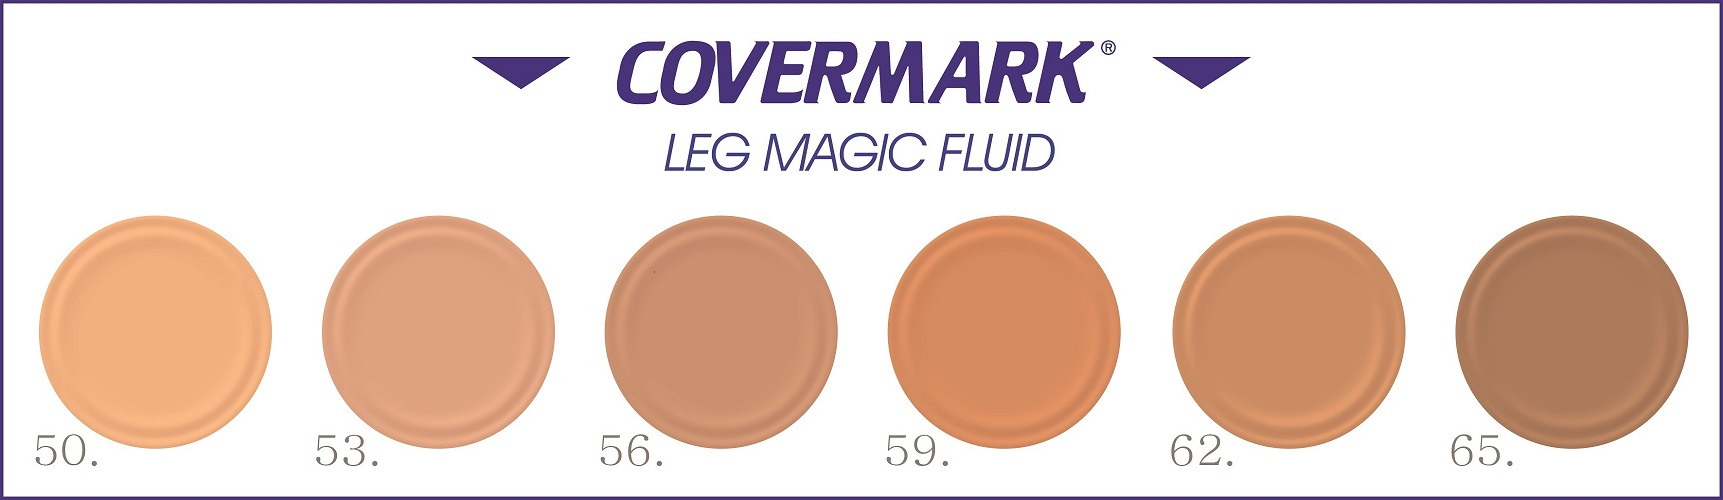 Covermark Leg Magic Fluid 59